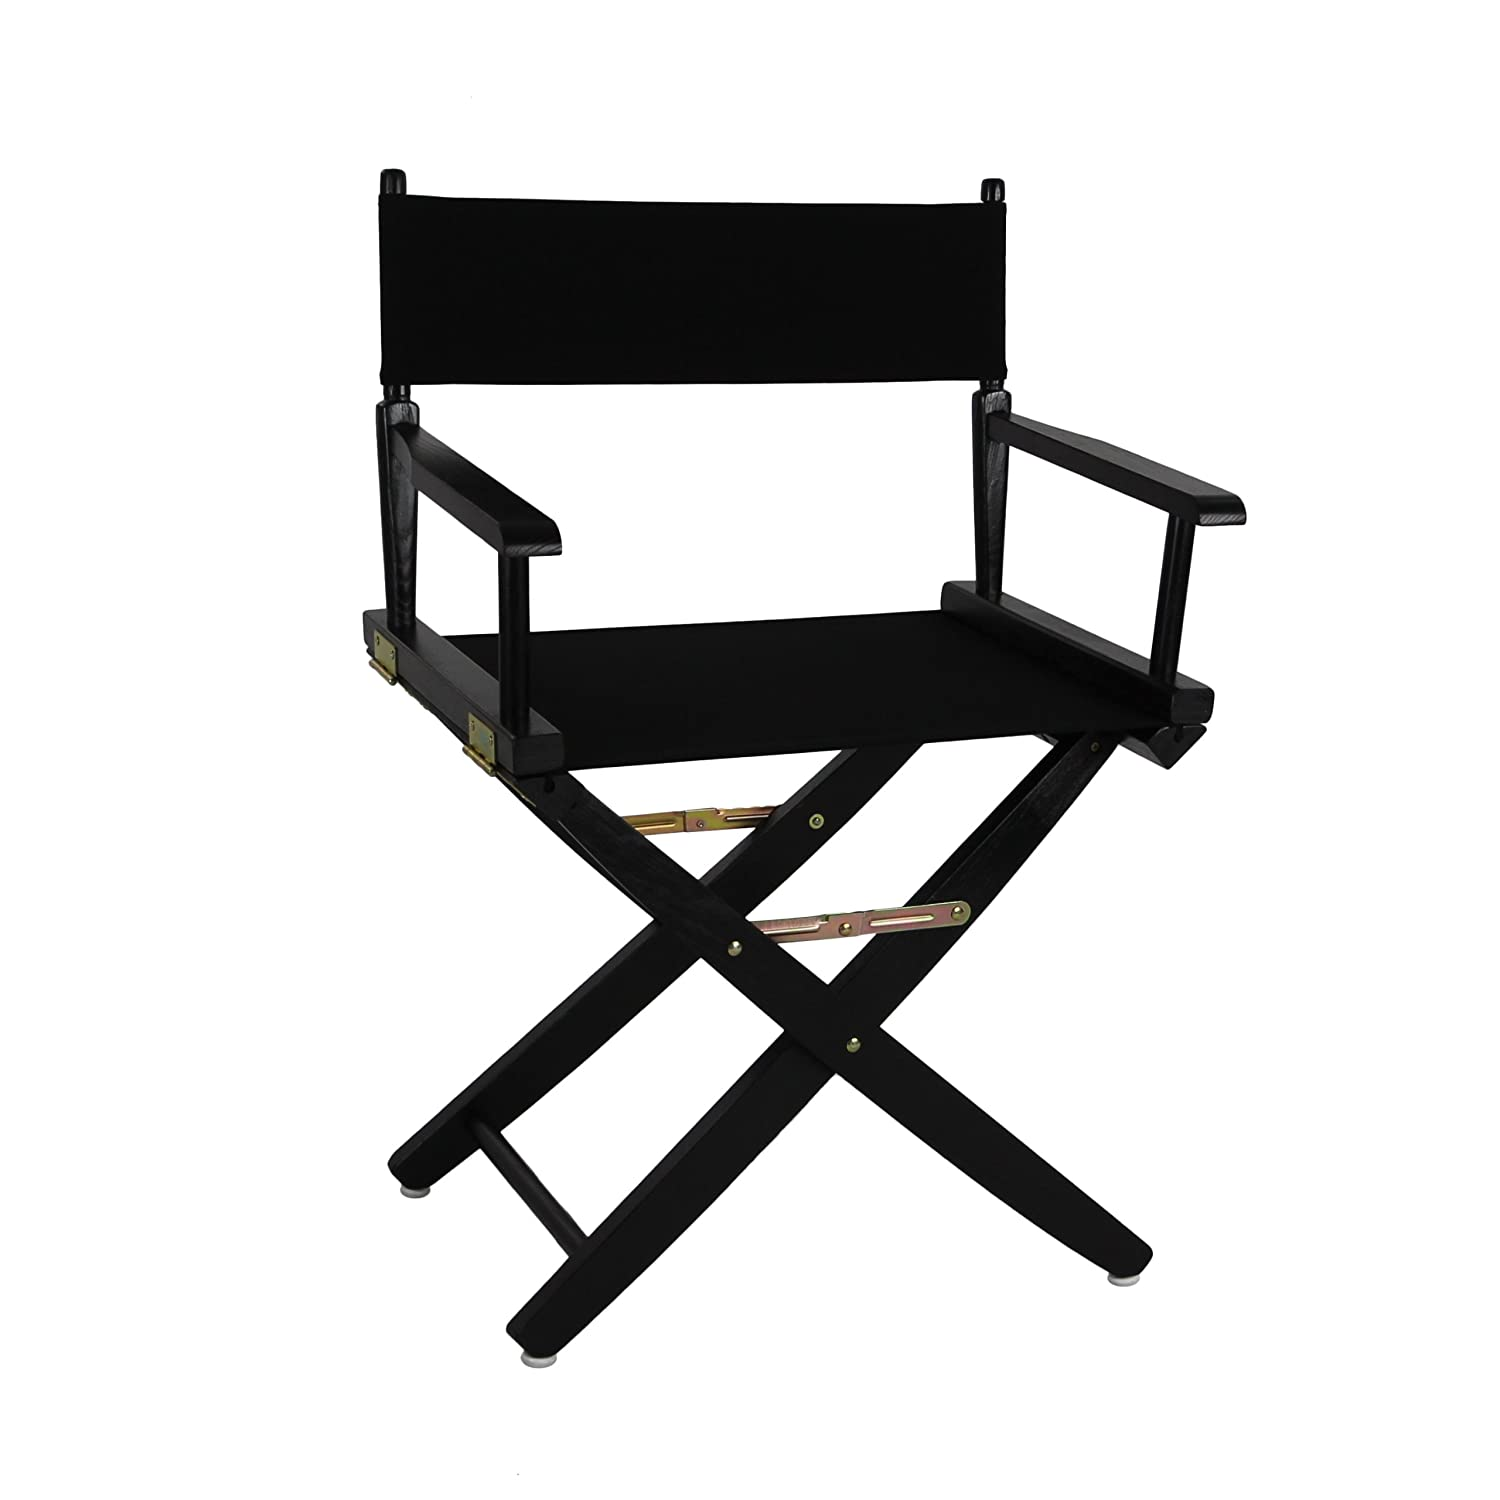 Directors chair covers - Amazon Com American Trails Extra Wide Premium 18 Directors Chair Black Frame W Black Color Cover Kitchen Dining